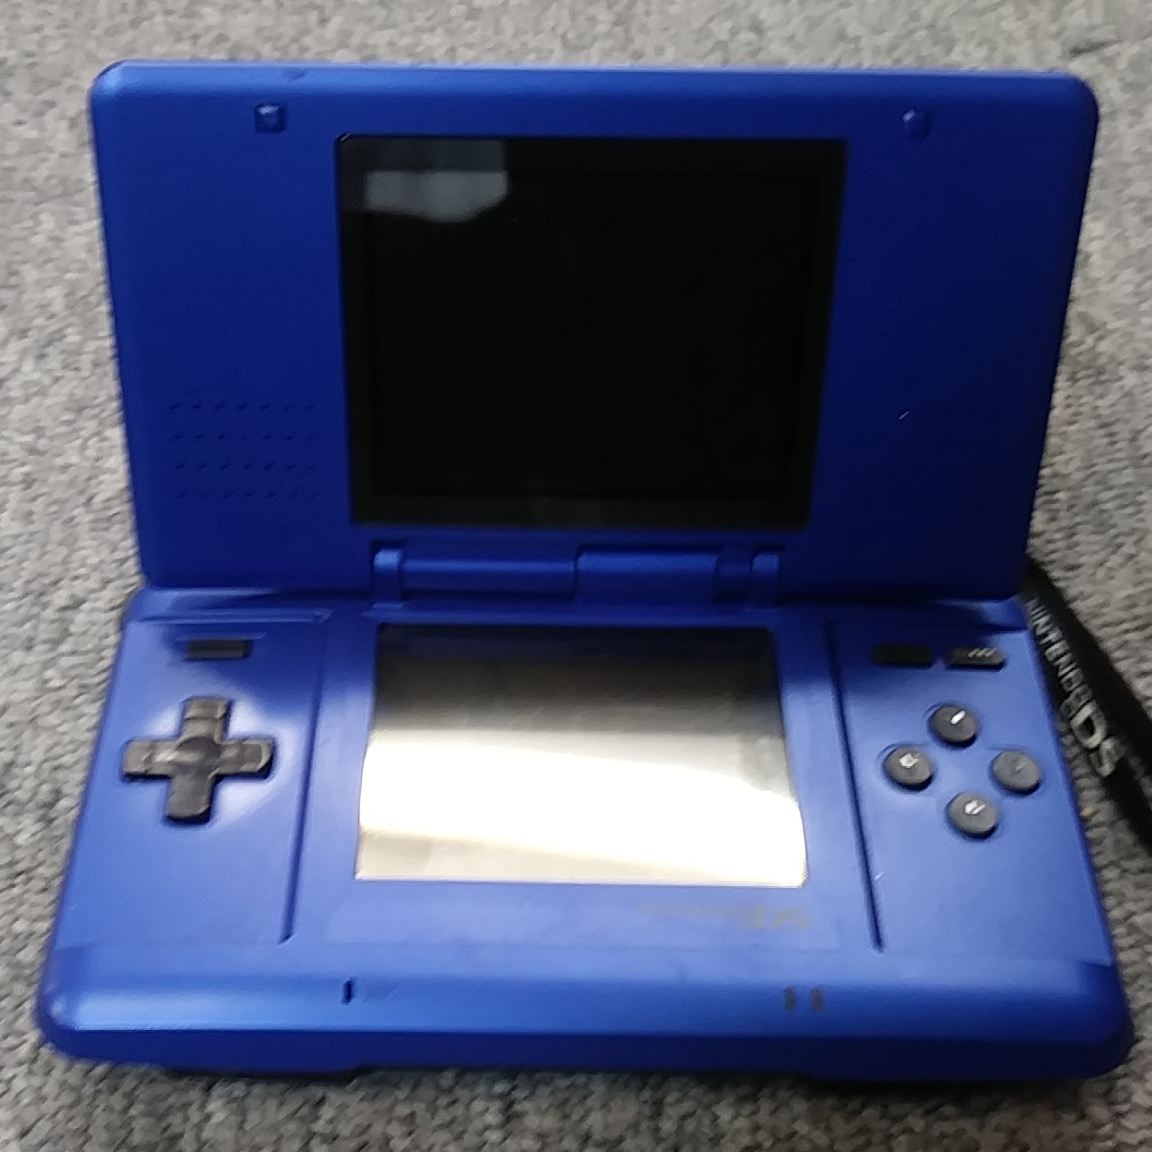 NINTENDO DS GAME SYSTEMS